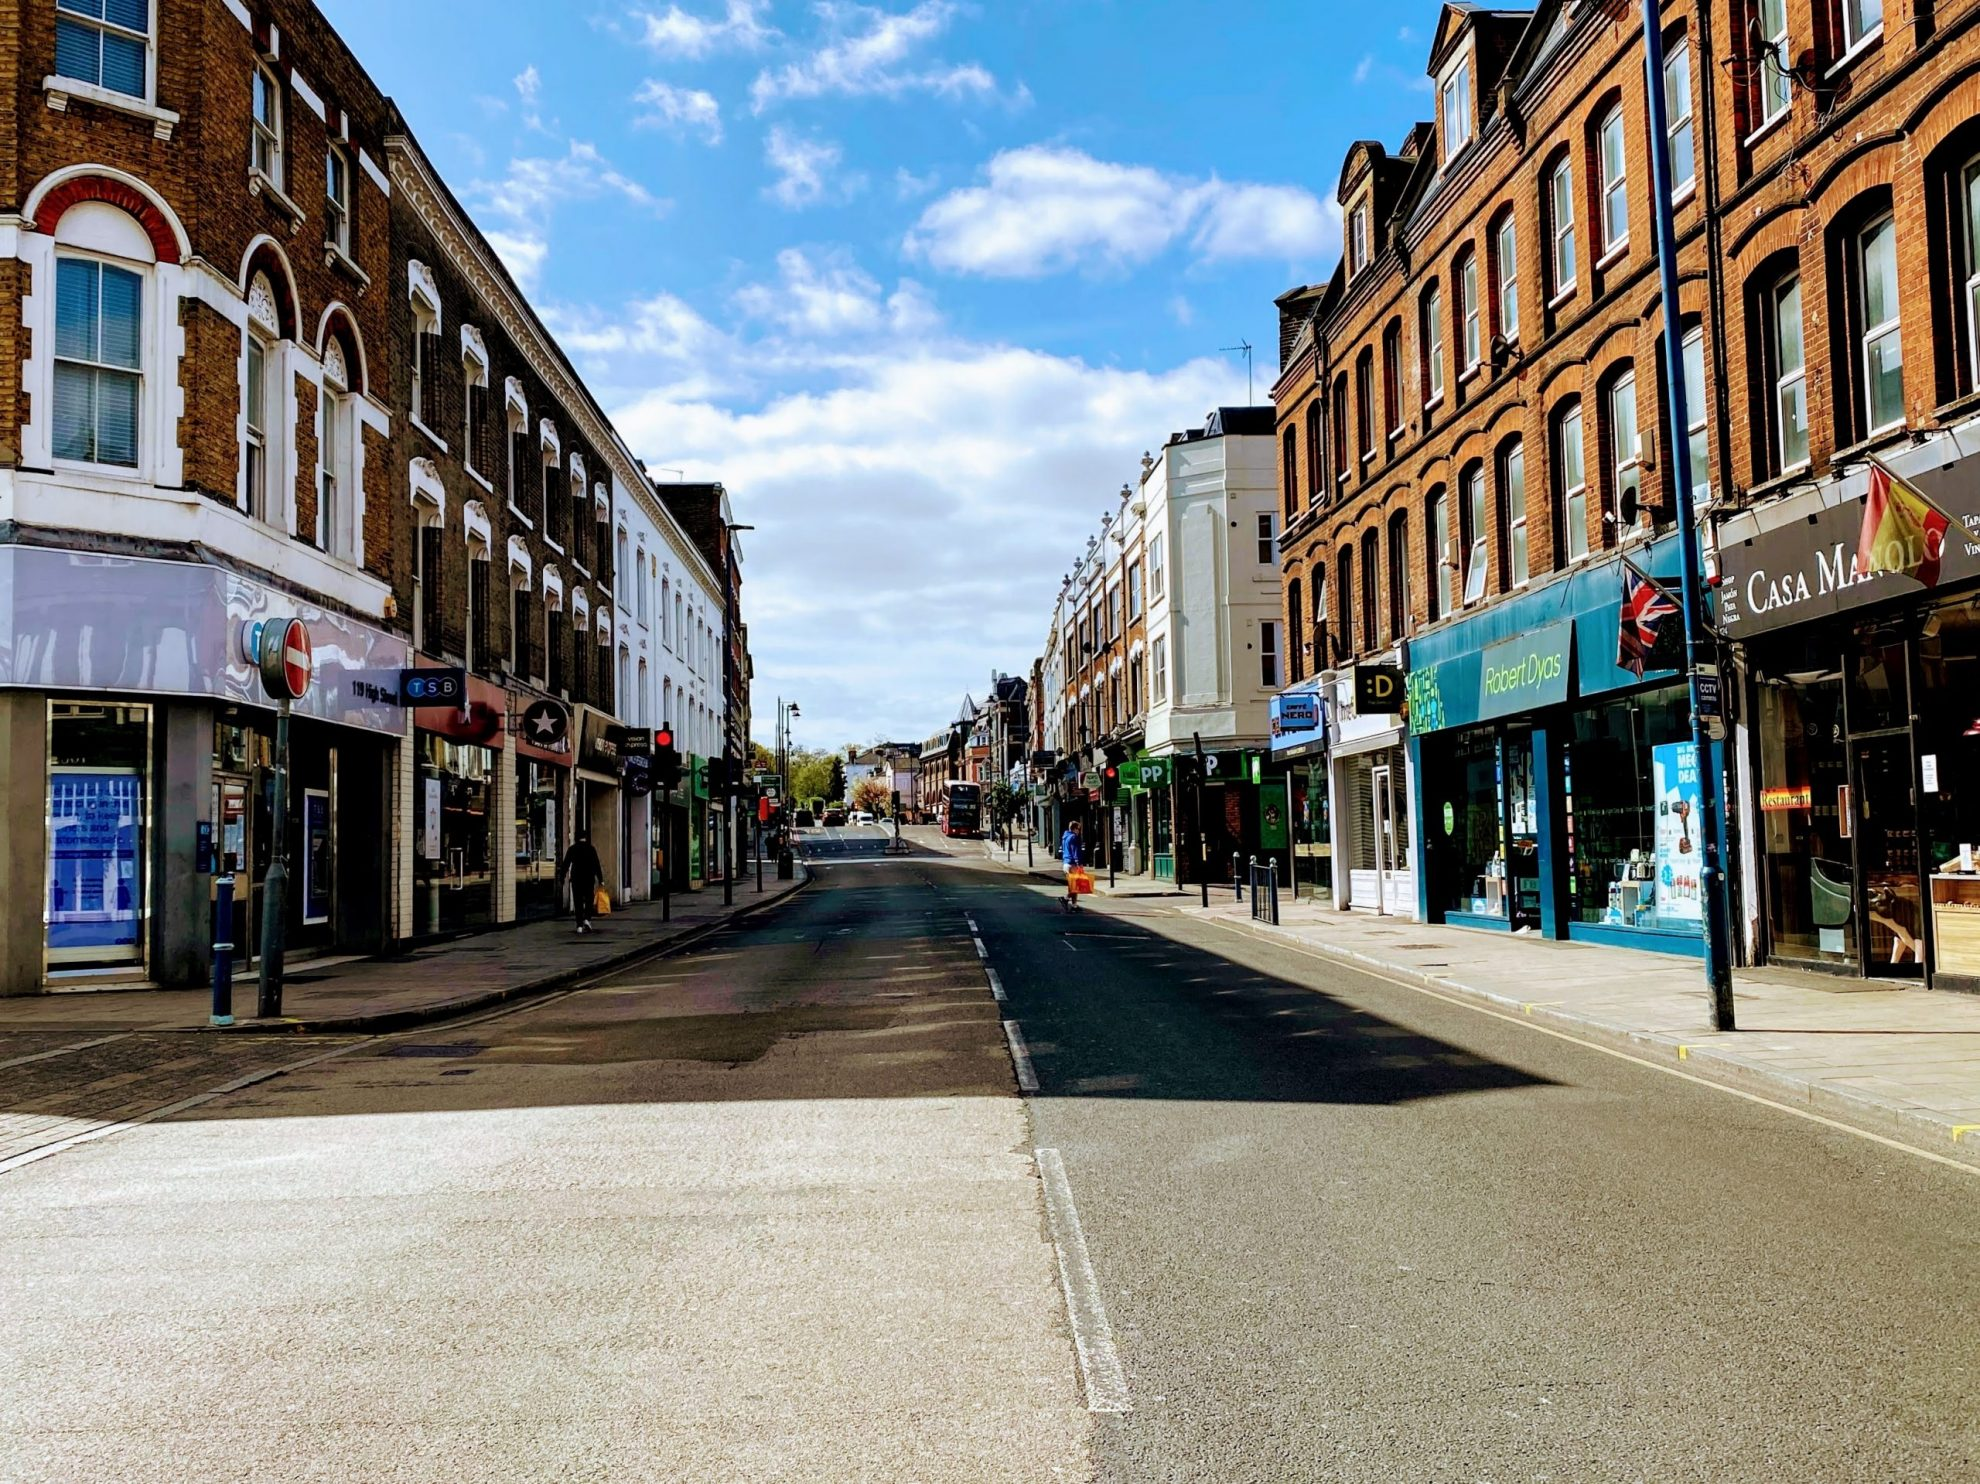 High street empty because of Coronavirus pandemic